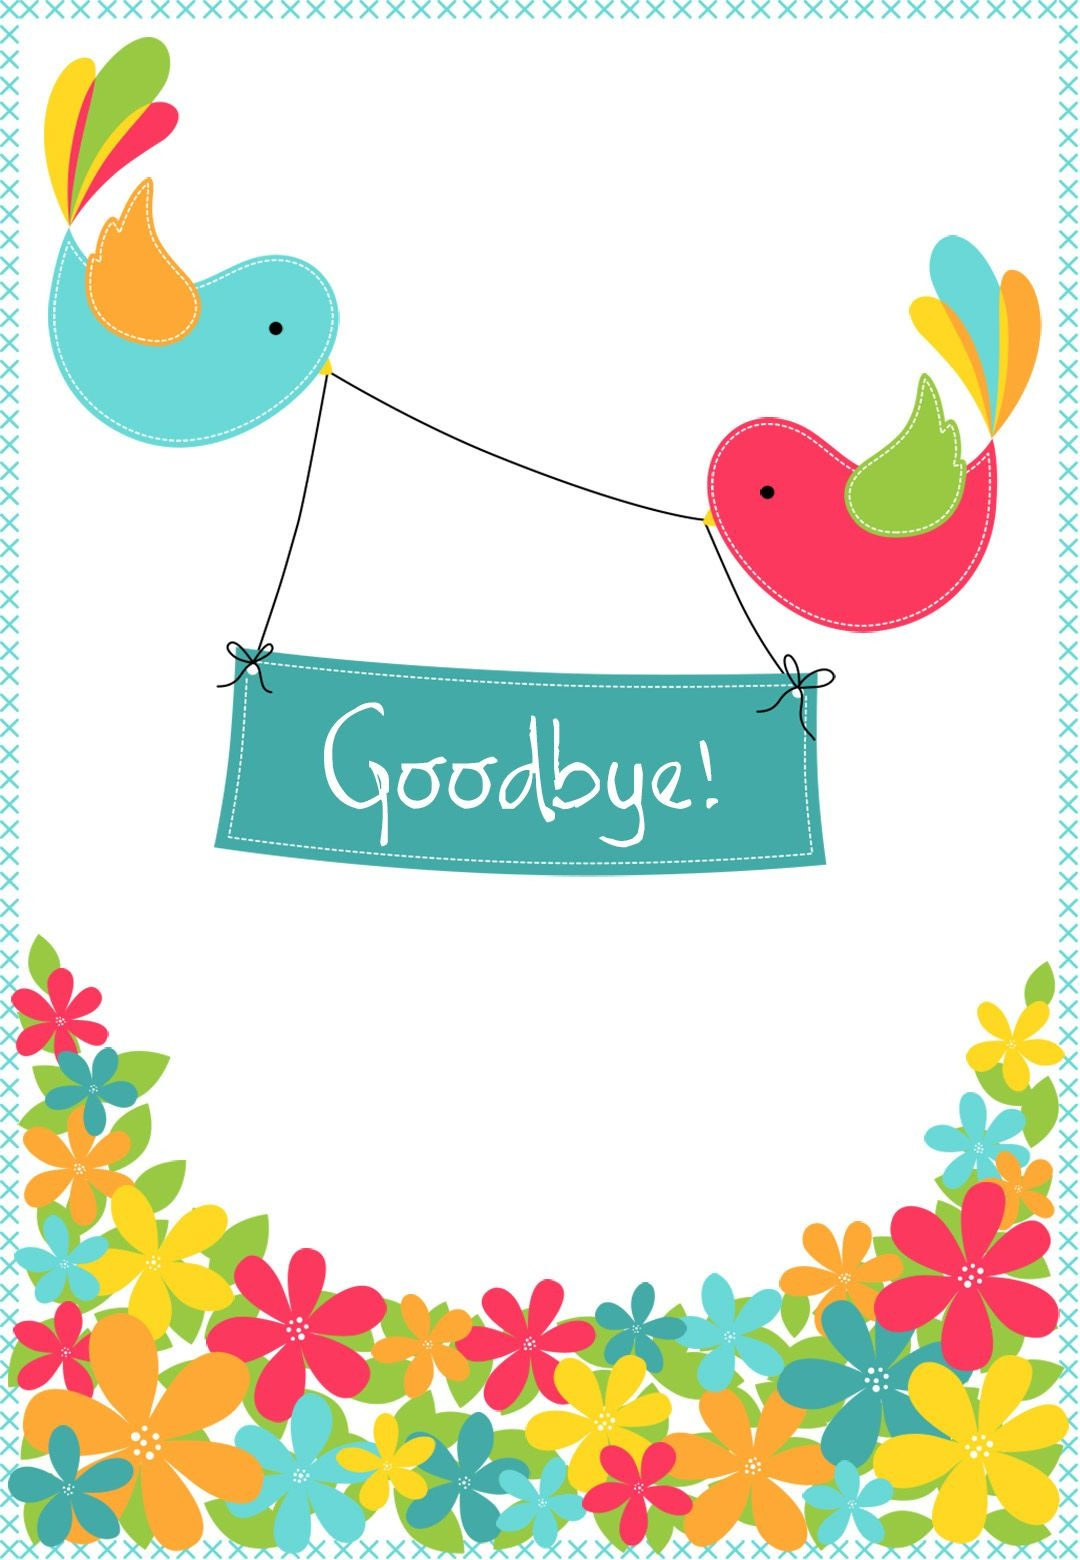 Goodbye From Your Colleagues - Free Good Luck Card | Greetings - Free Printable Goodbye Cards